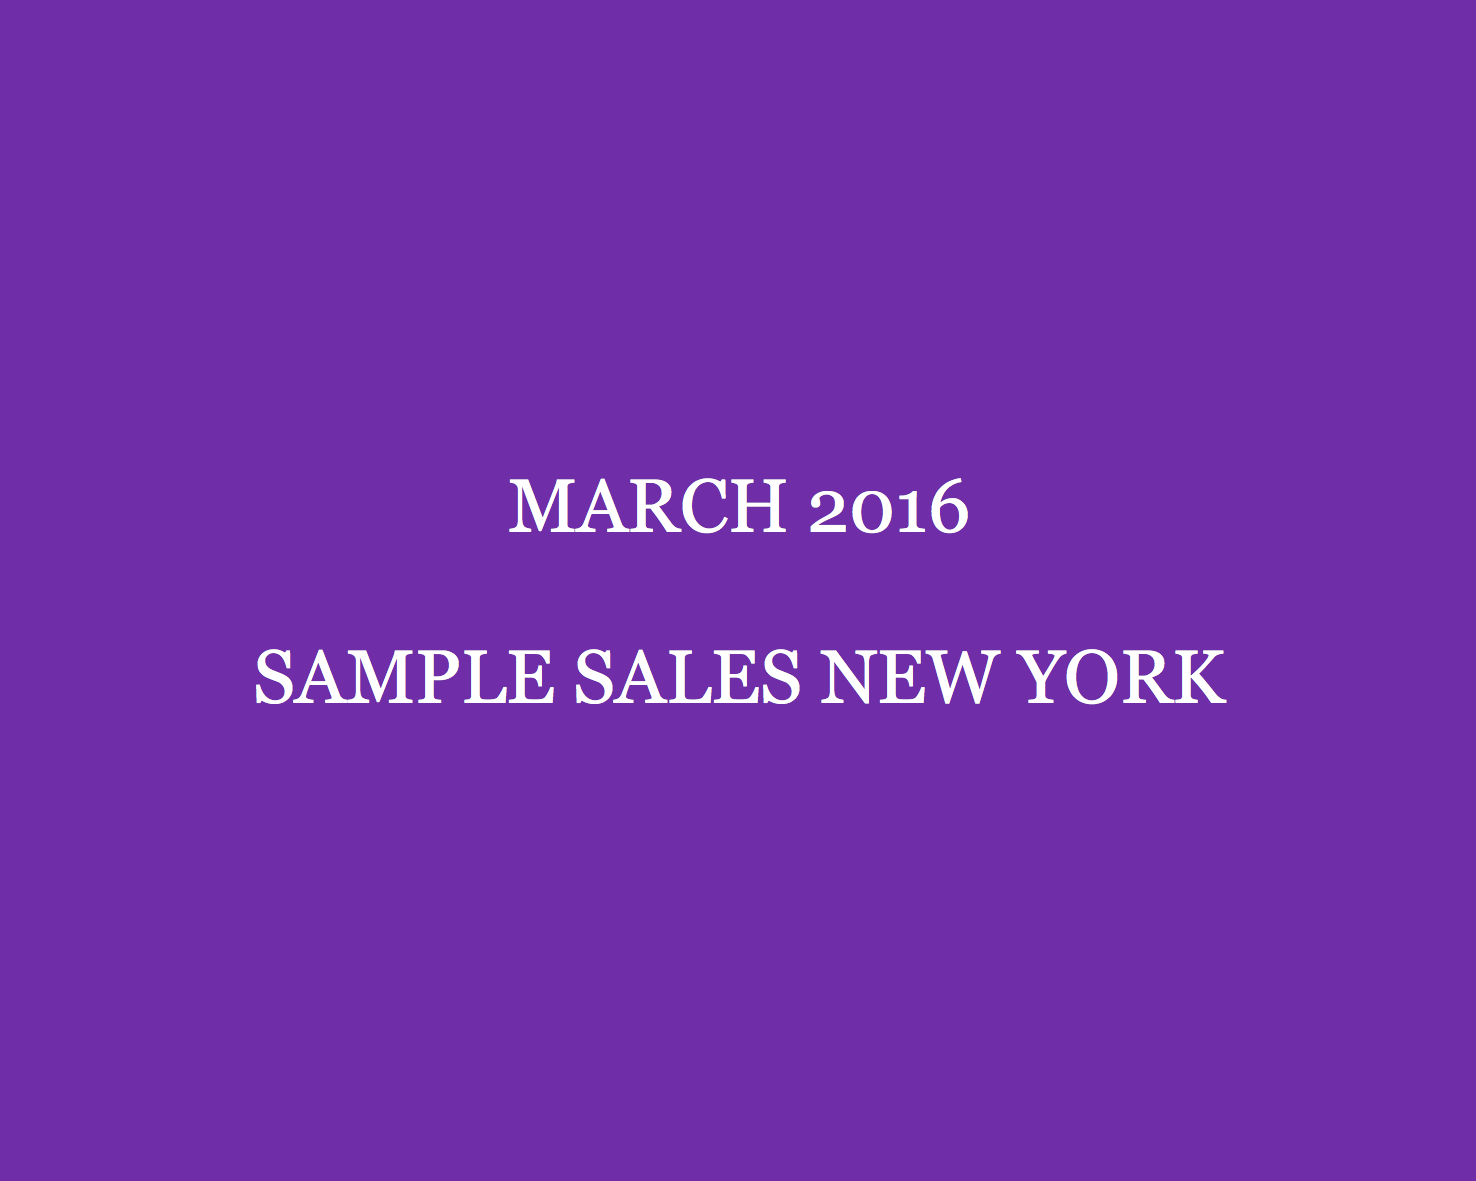 March Sample Sales New York Style Barista New York Sample Sales 2016 New York sample sale New York